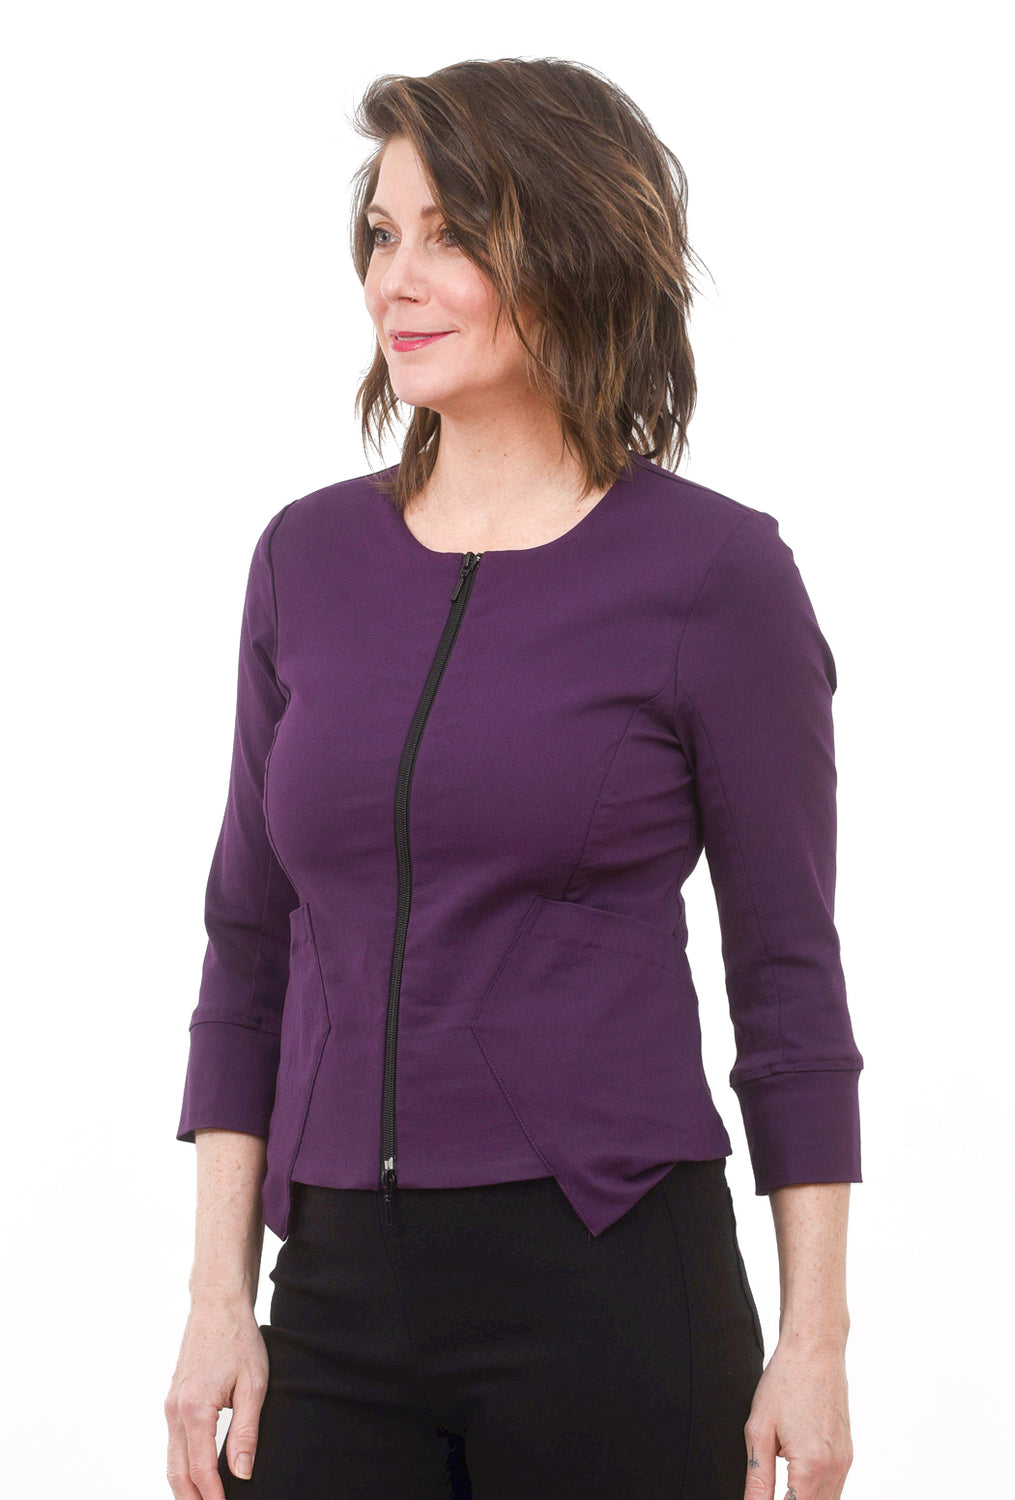 Shortcut Jacket, Amethyst